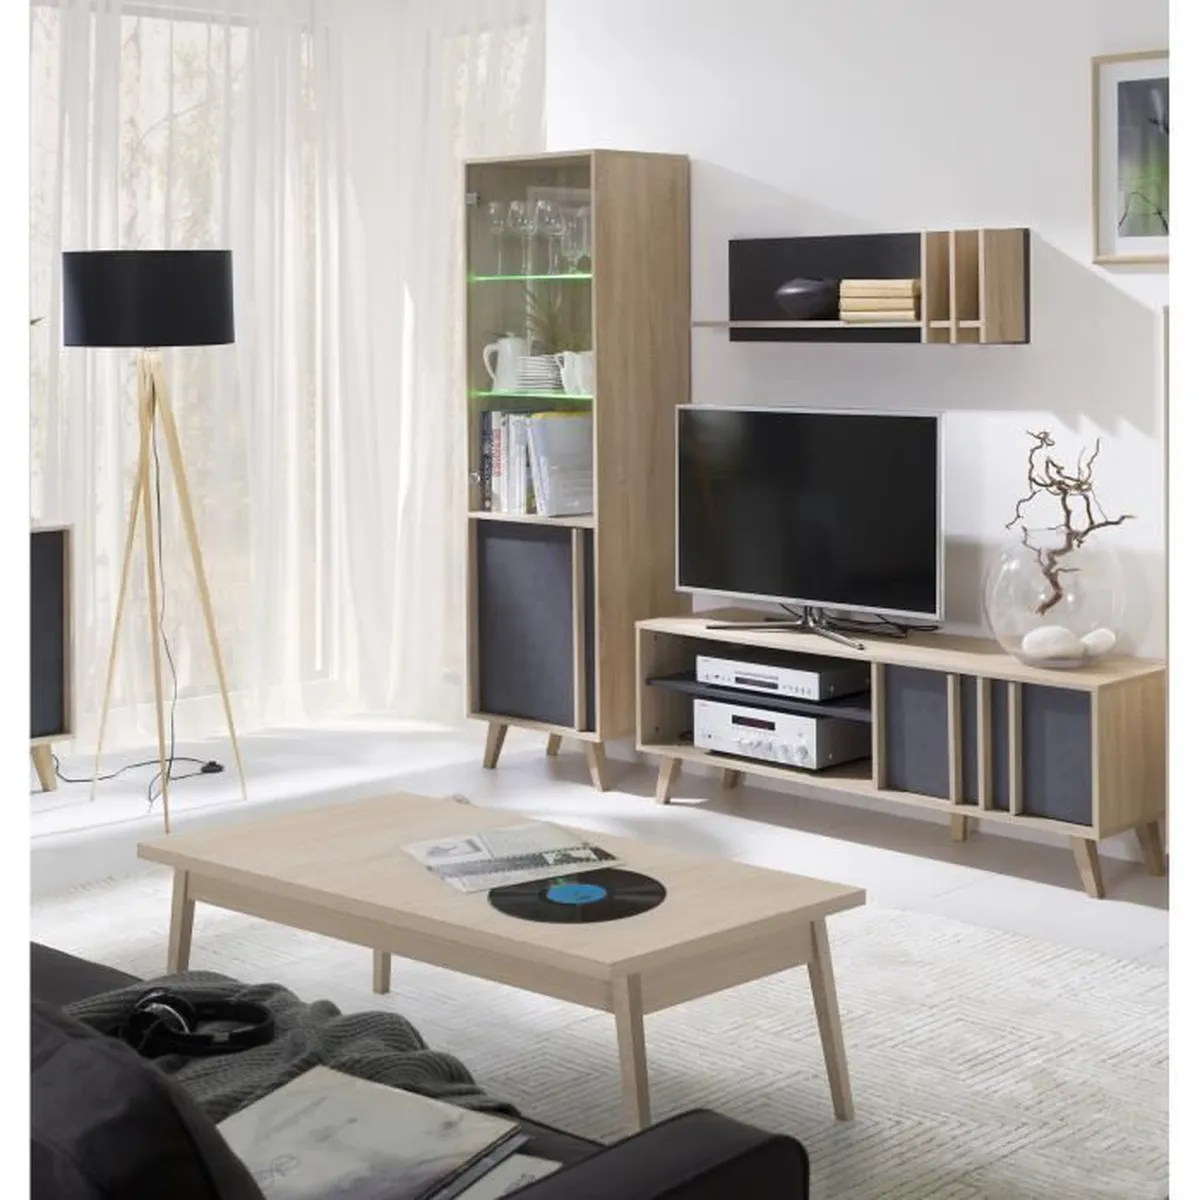 Ensemble Meuble Tv Table Basse Buffet Price Factory Ensemble Design Pour Votre Salon Malmo